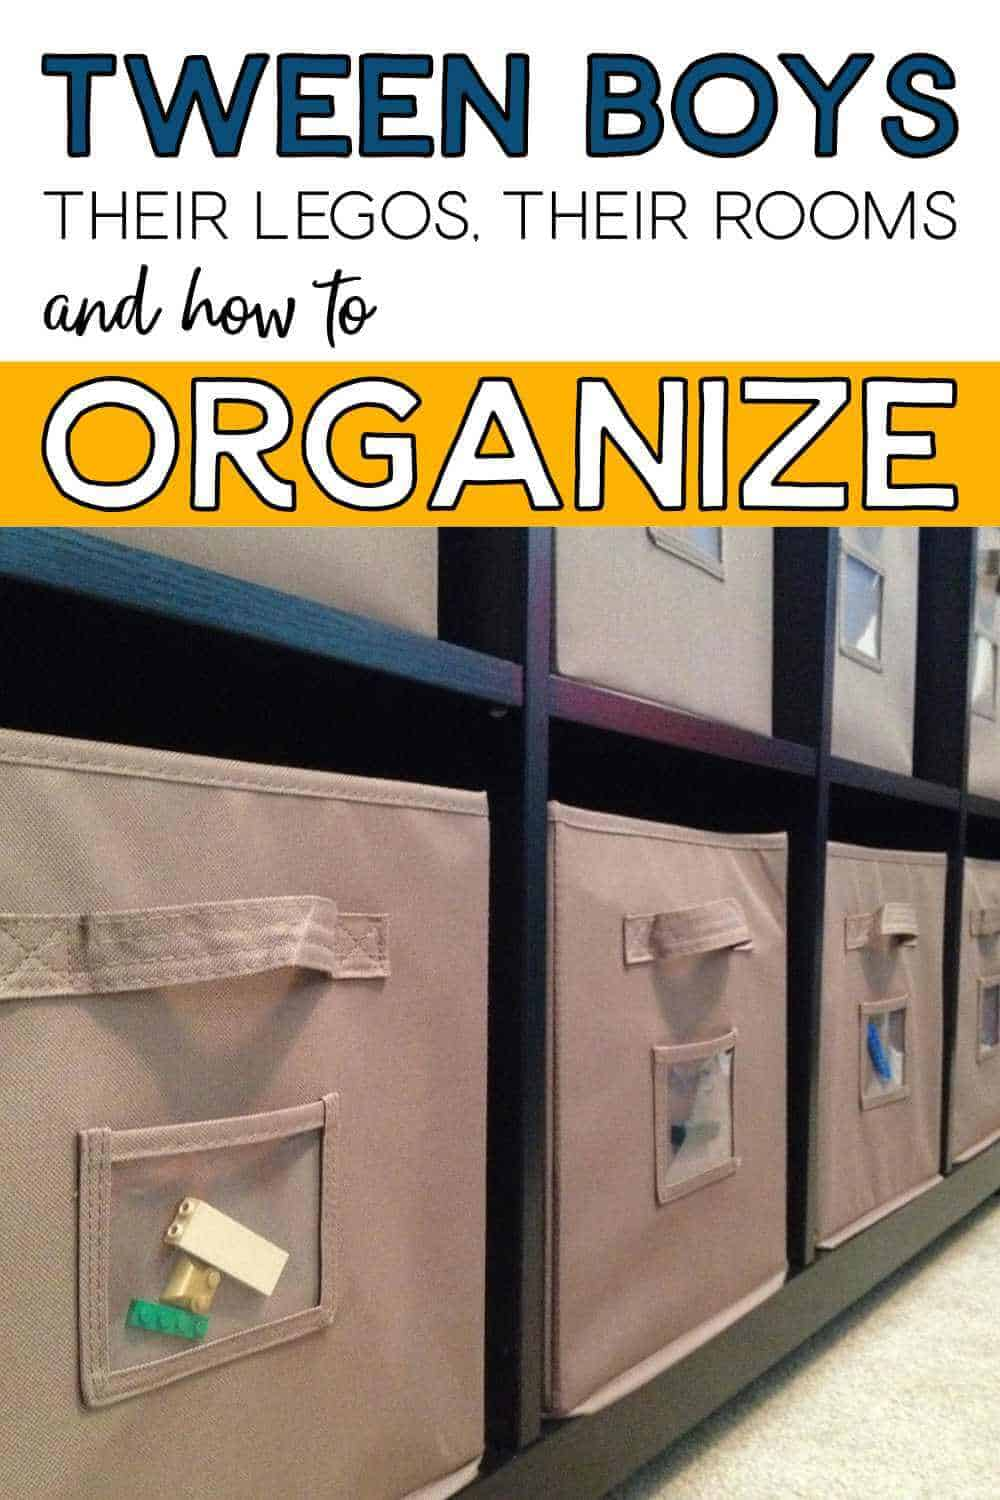 Tween Boys, Their LEGOS, Their Rooms and How To Organize.